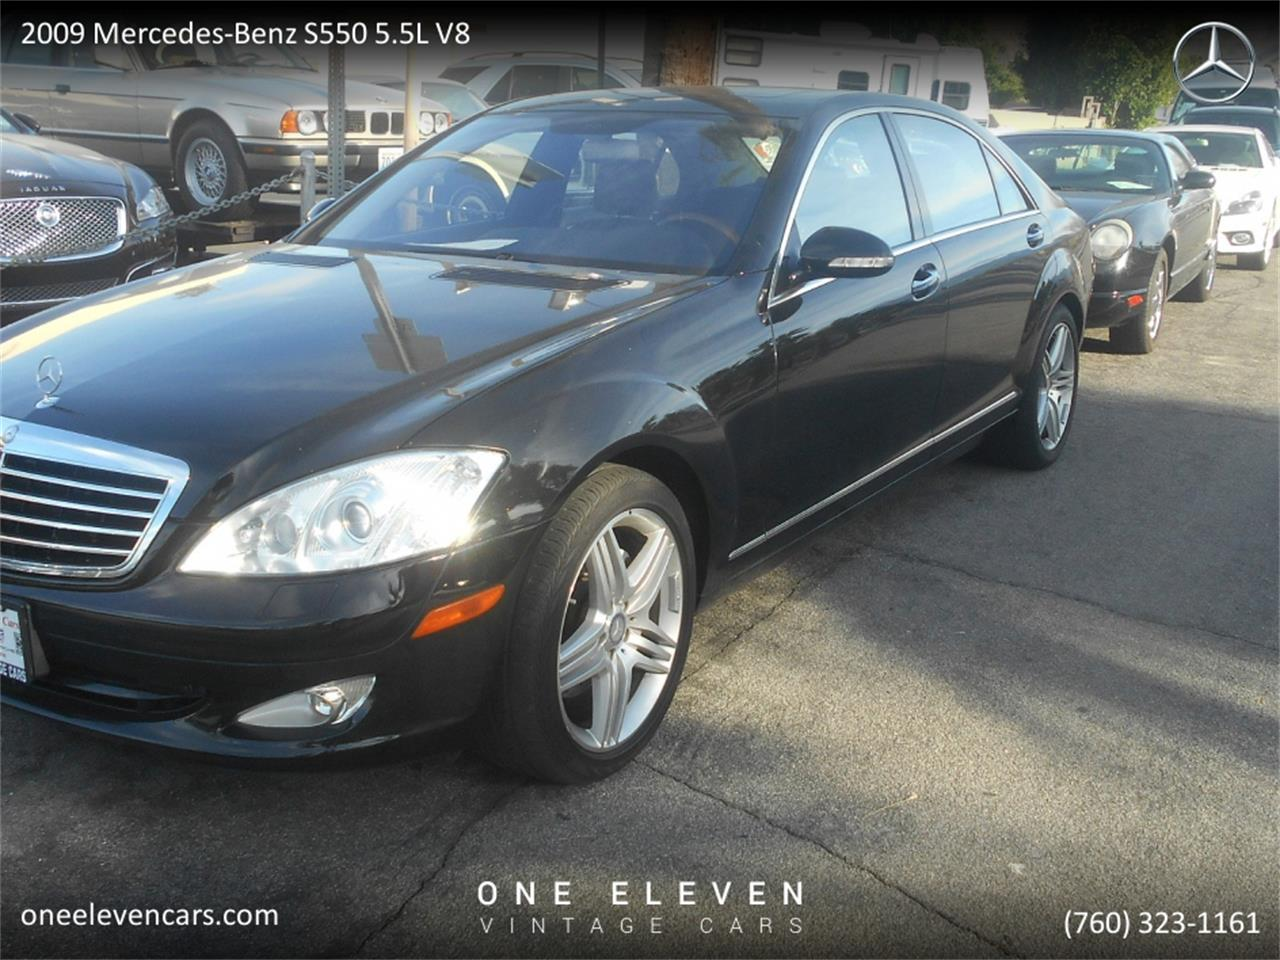 for sale 2009 mercedes-benz s-class in palm springs, california cars - palm springs, ca at geebo